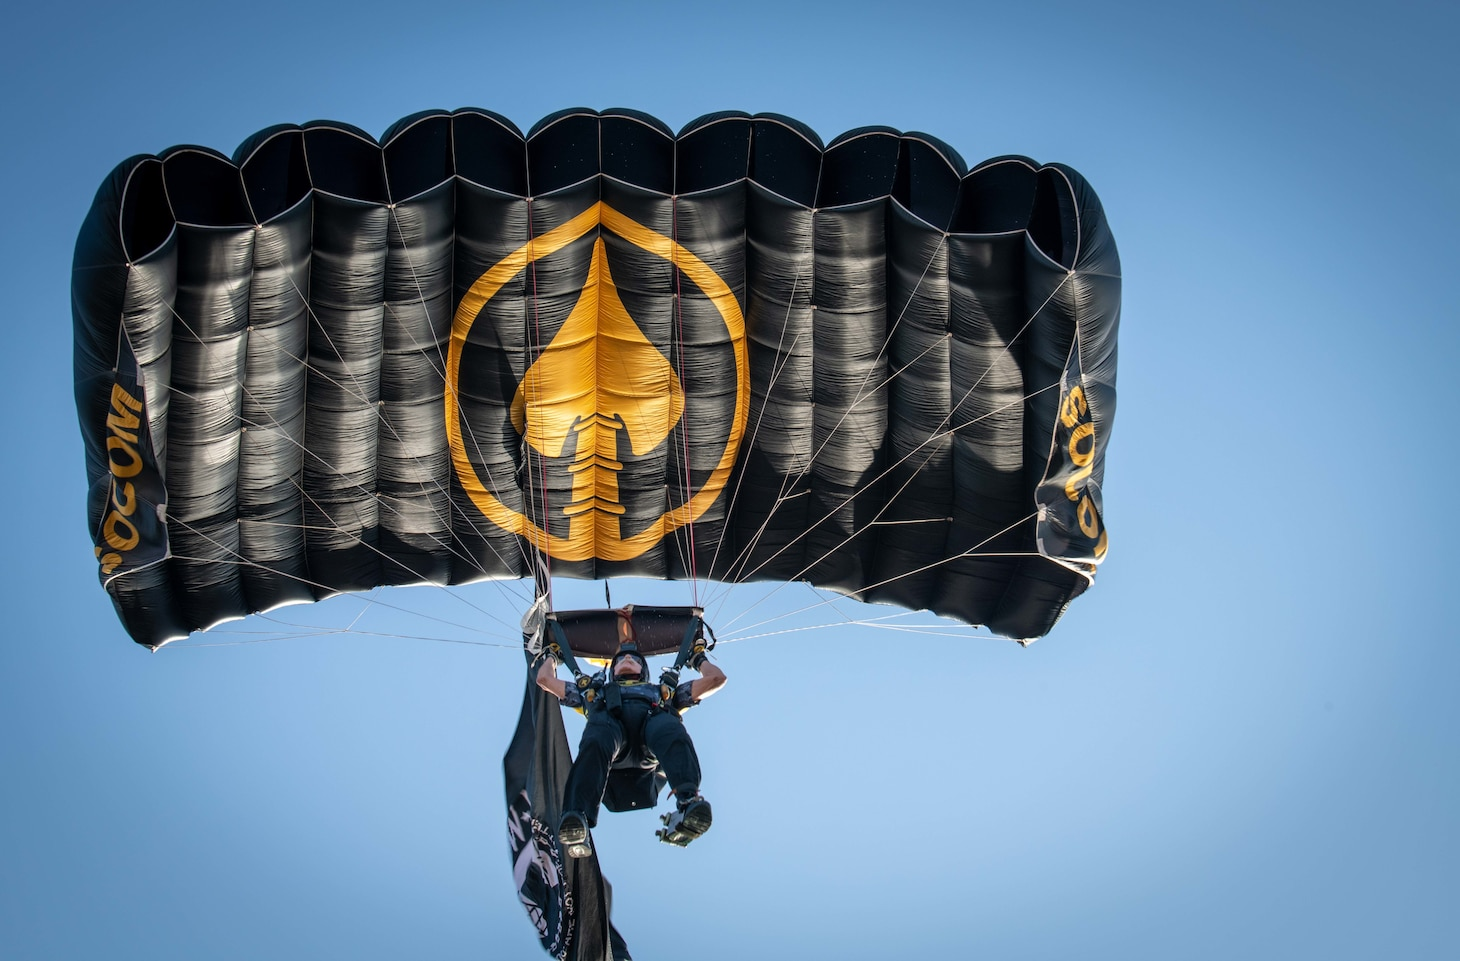 A member of the U.S. Special Operations Command parachute team lands from above at the 2019 DoD Warrior Games cycling time trials in Tampa, Florida.